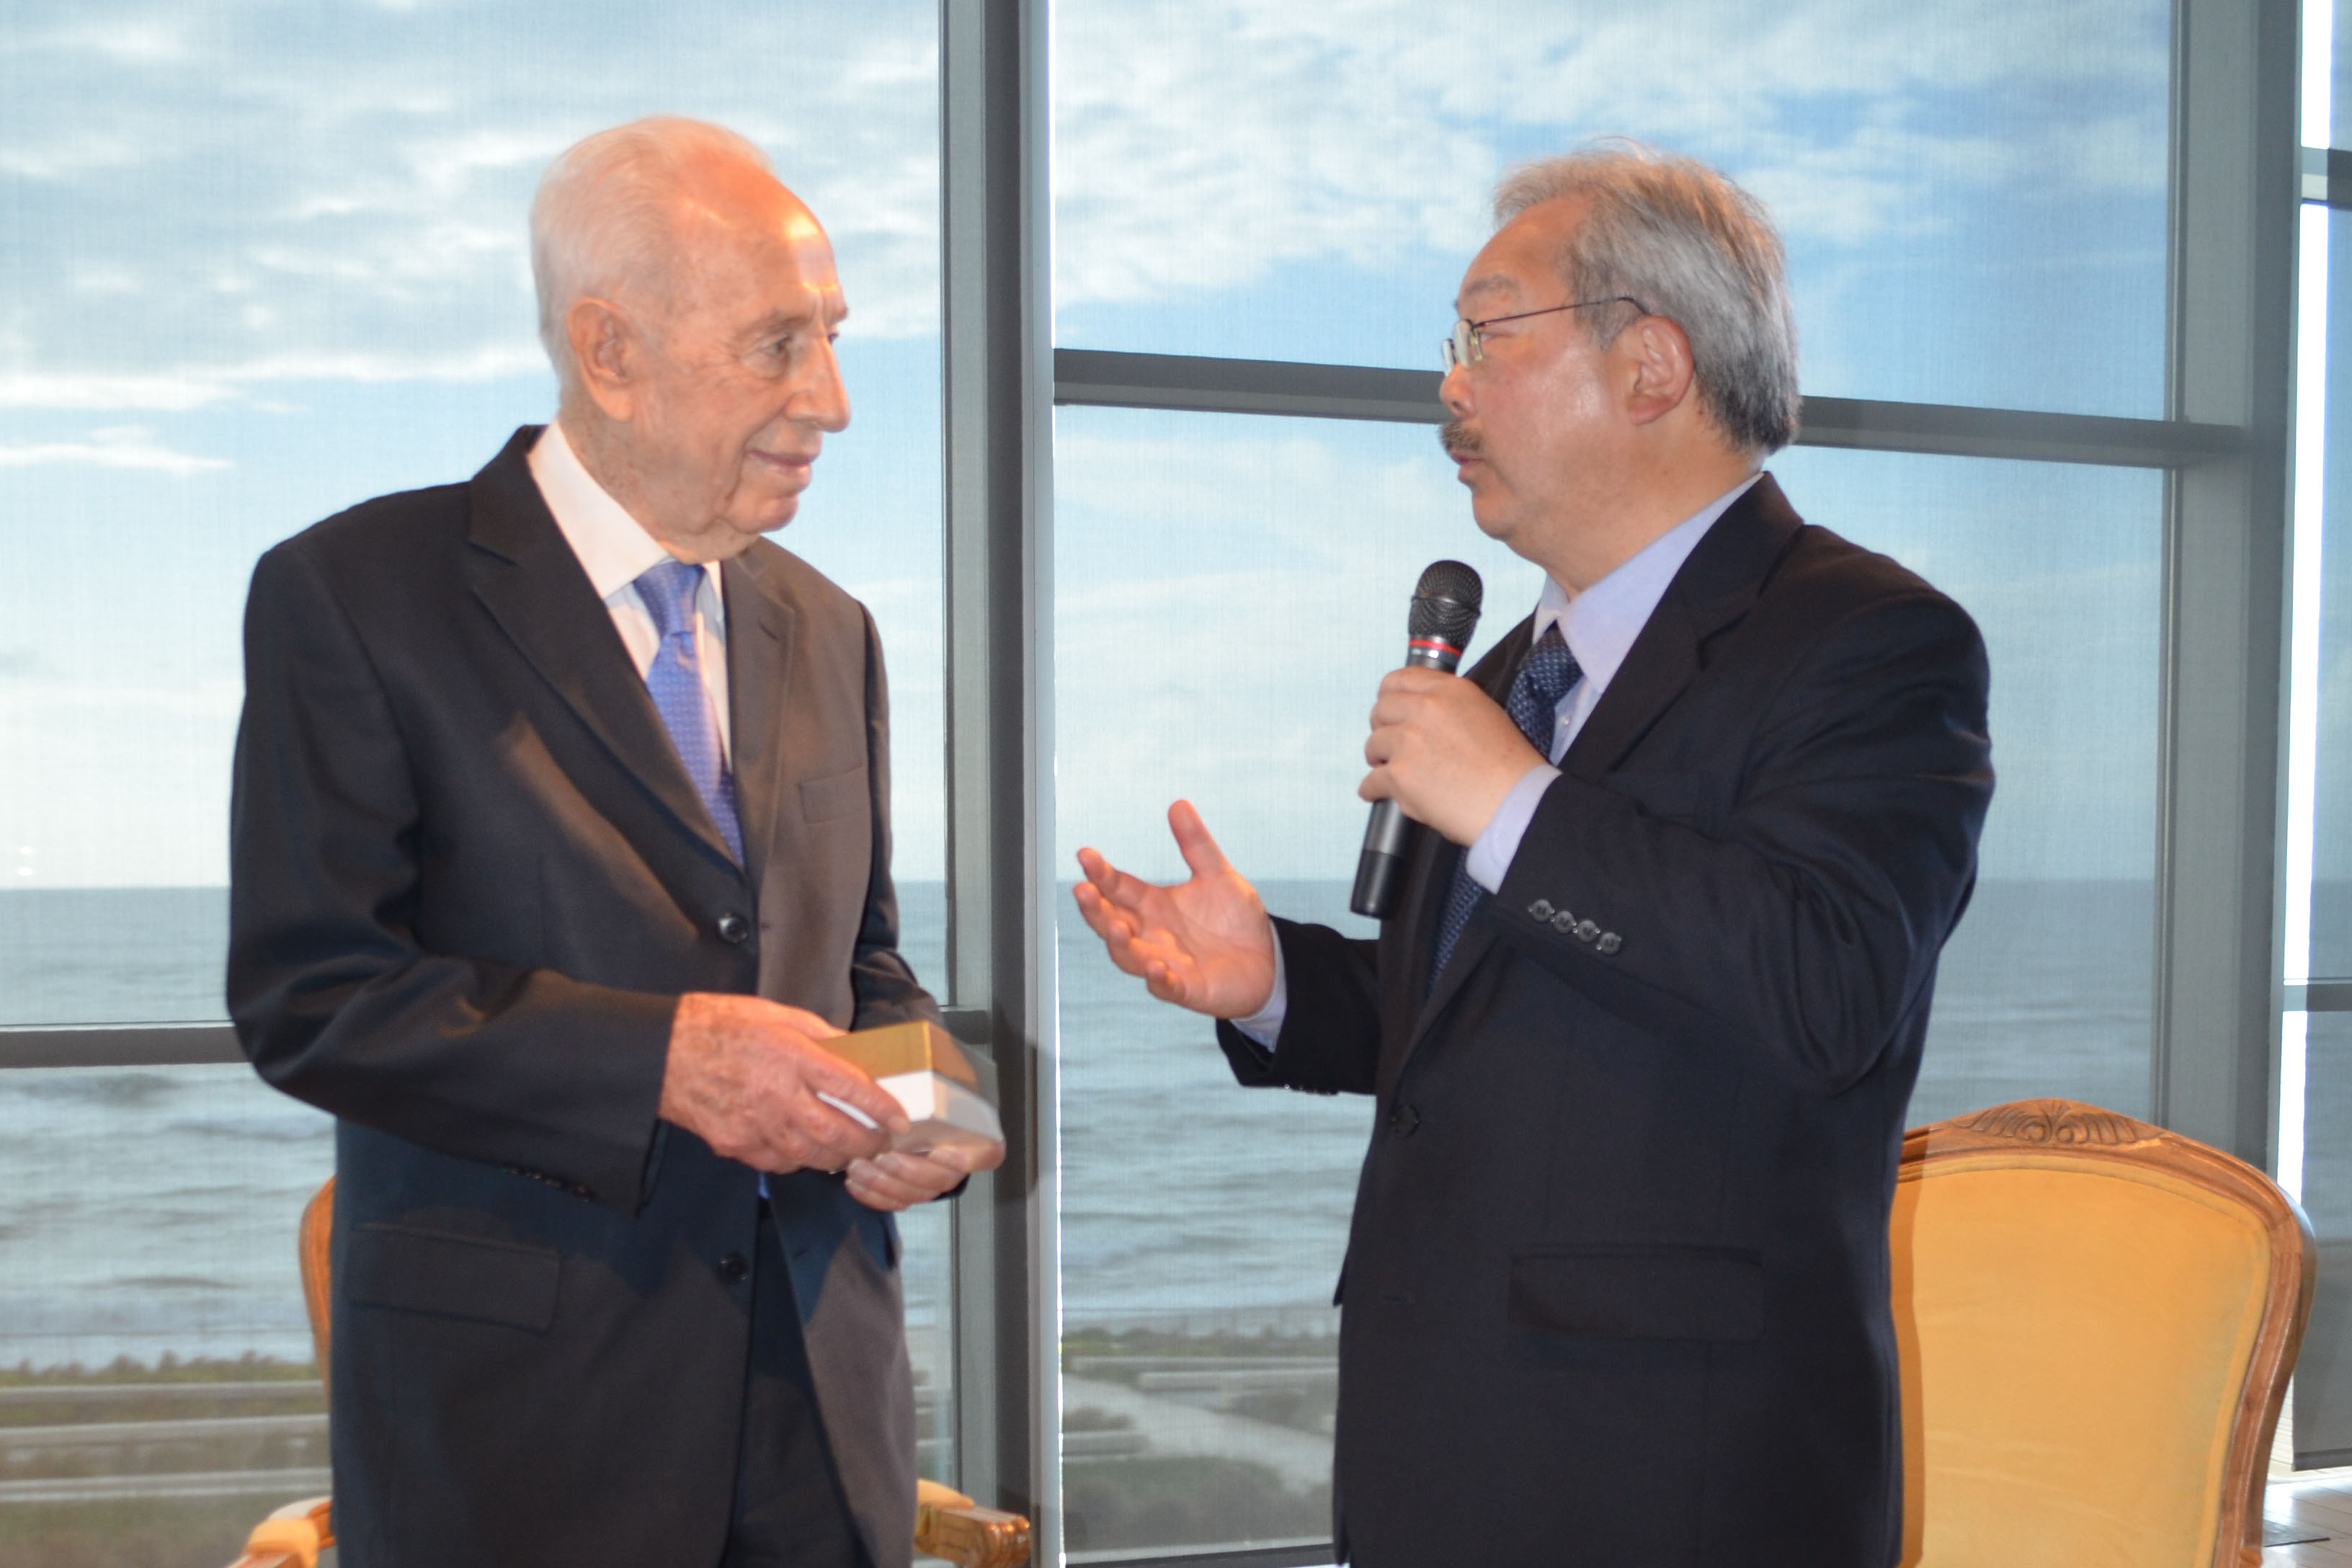 Peres and Lee talking